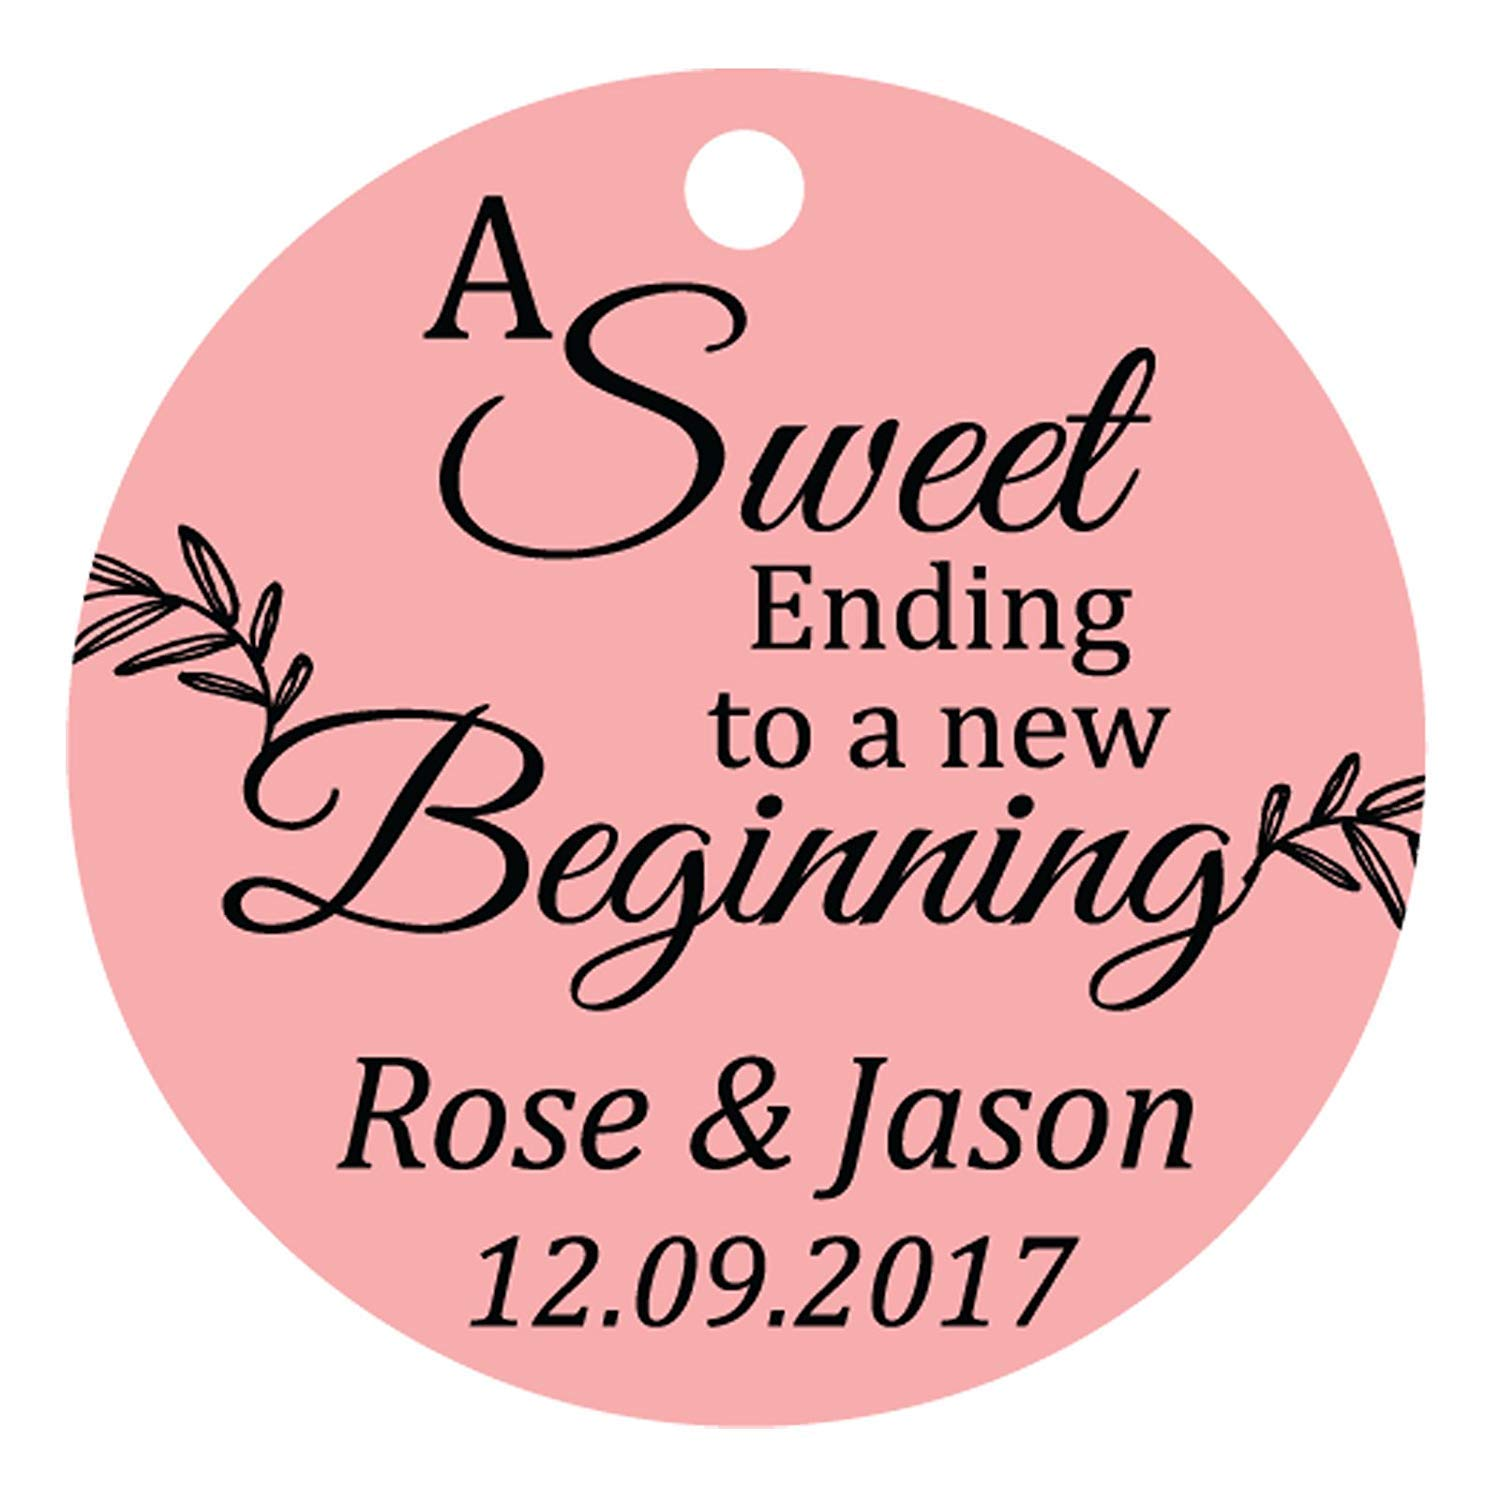 100 PCS A Sweet Ending To A New Begnning Circle Hang Tags Personalized Wedding Favor Gift Tags